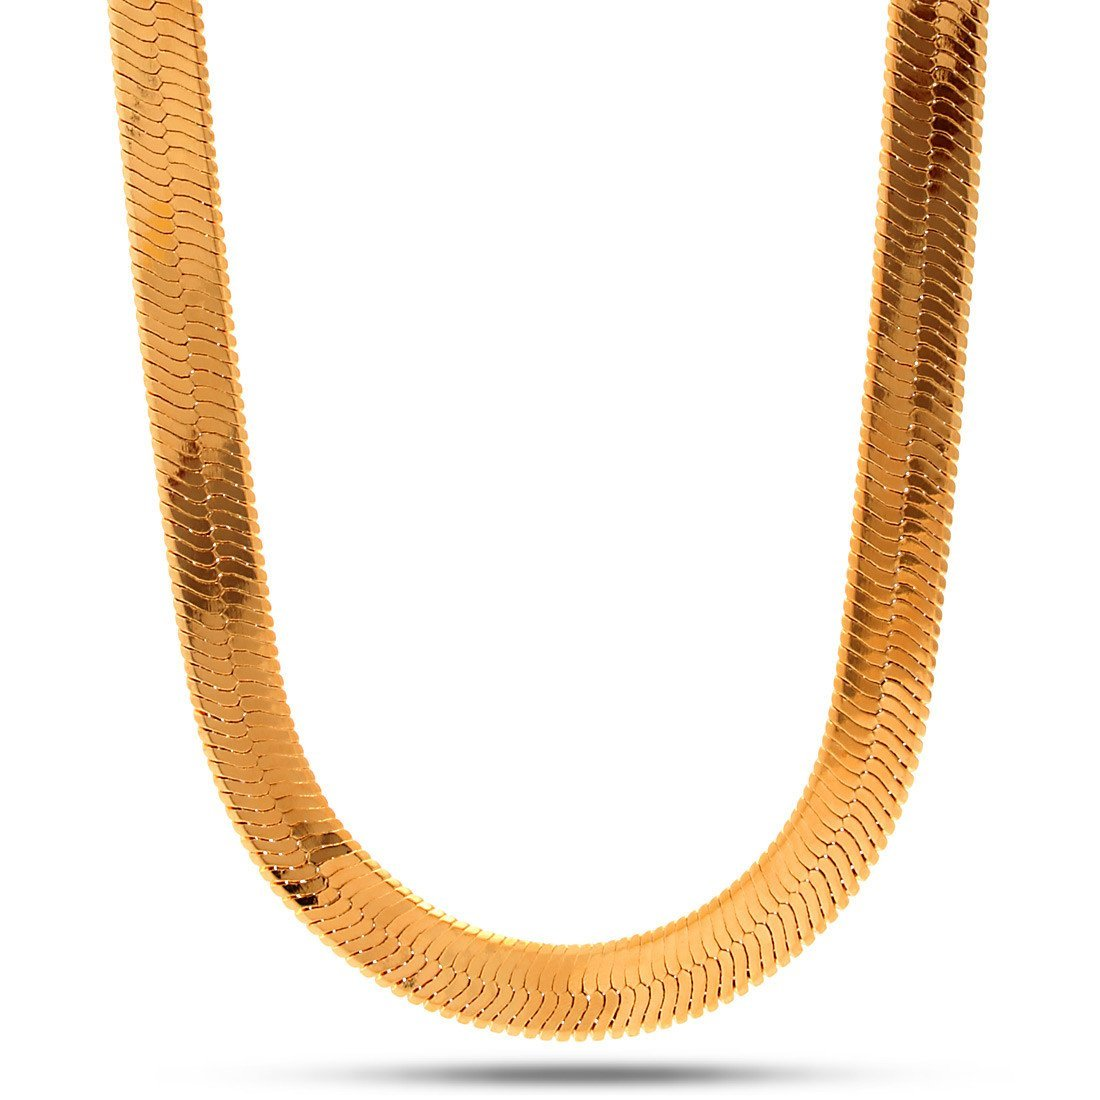 Chains - 10mm 18K Gold Herringbone Chain -   jetcube